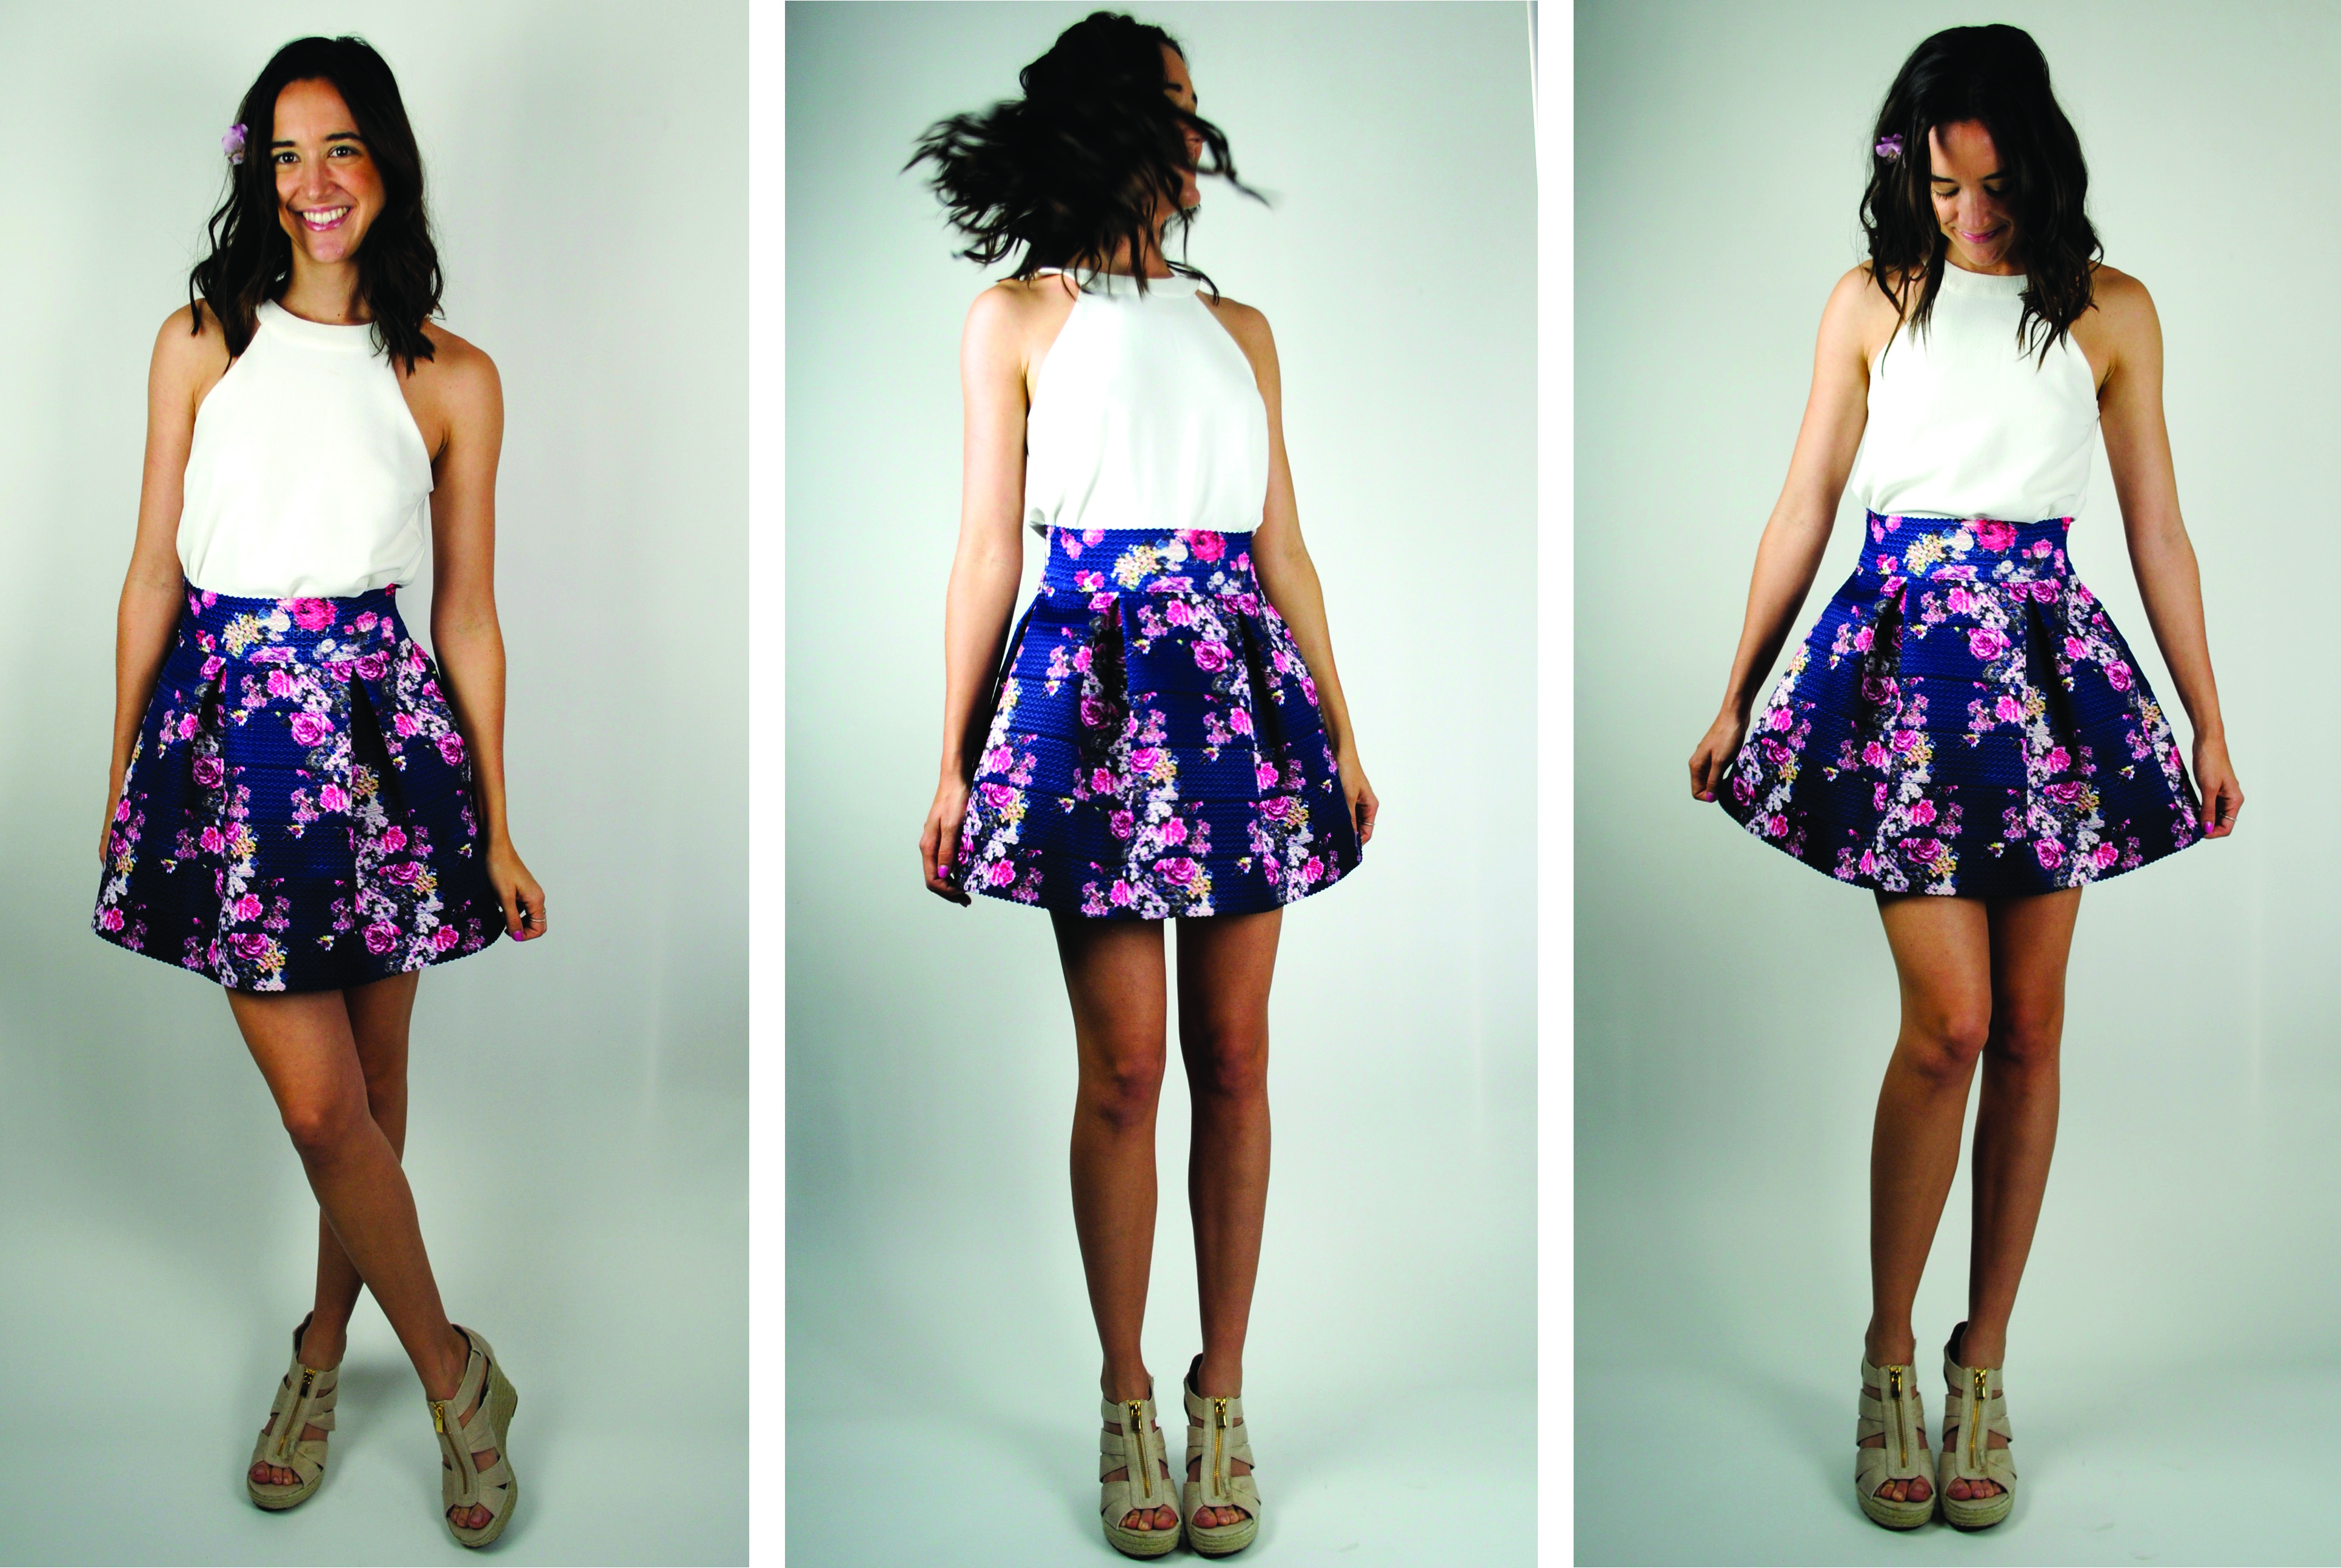 Twirling in florals